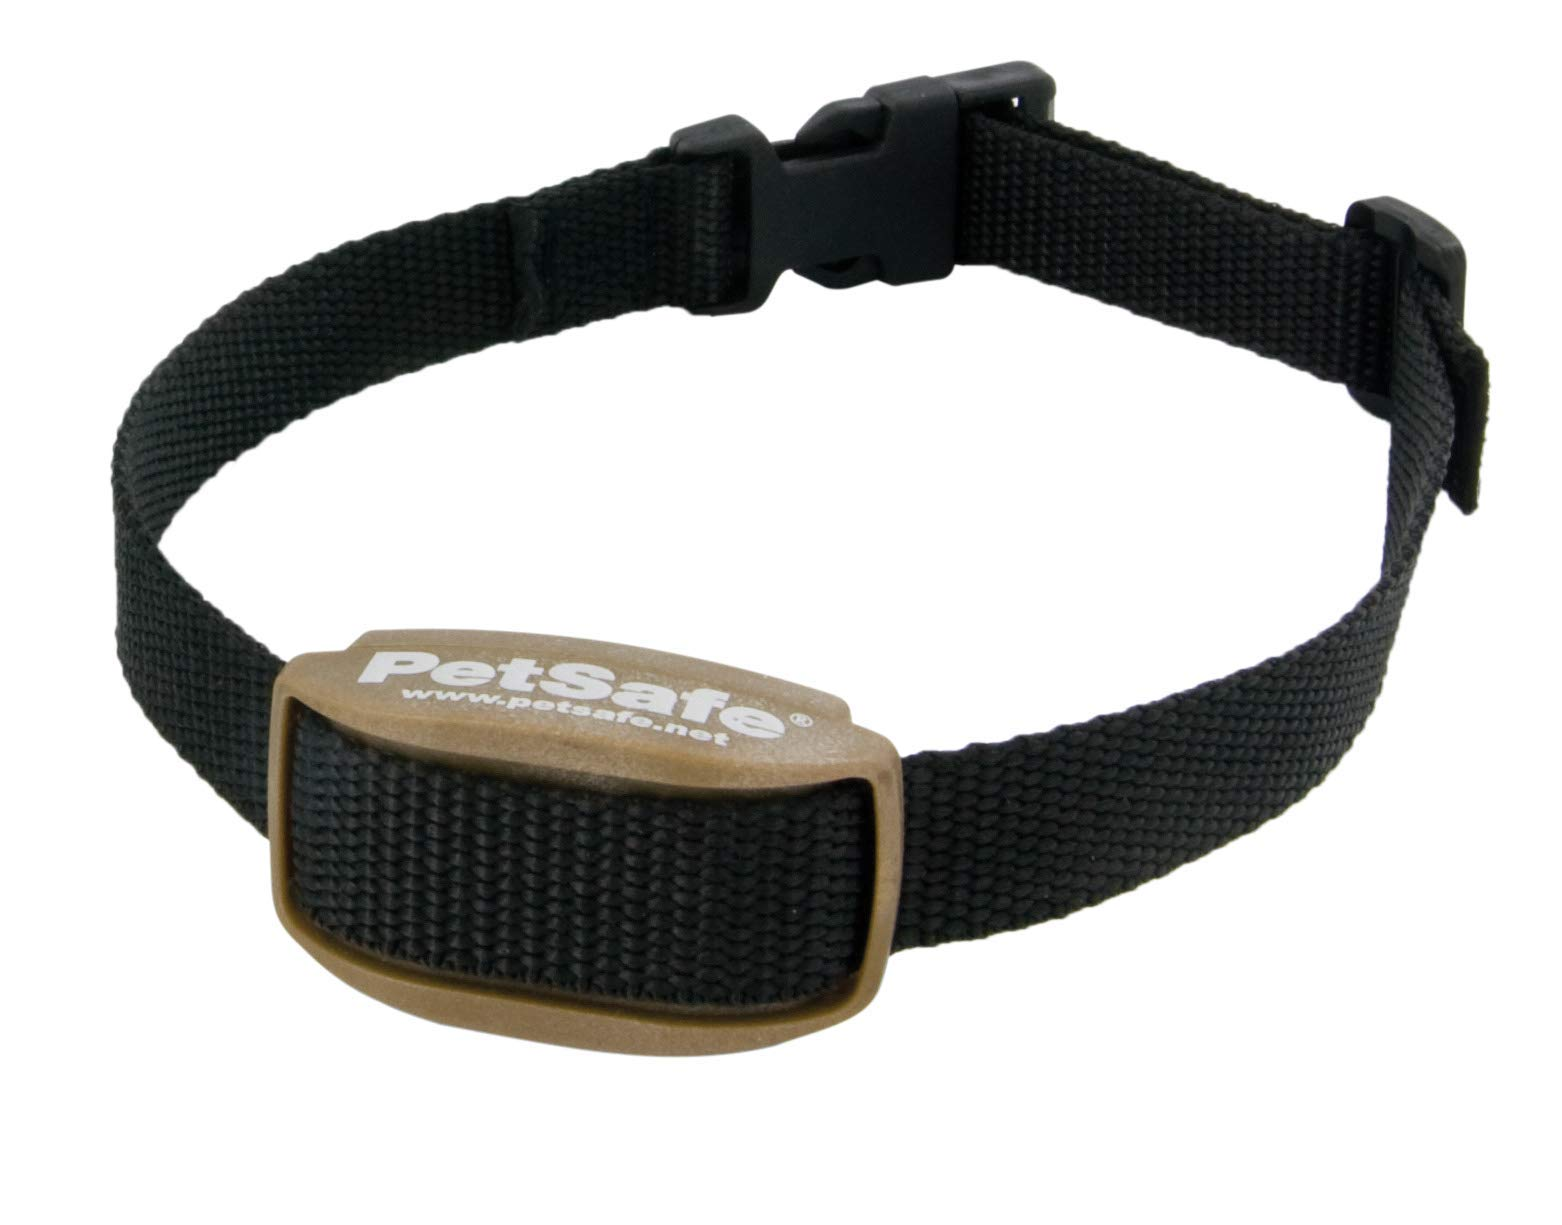 PetSafe Pawz Away Extra Receiver Collar for Pawz Away Pet Barriers for Cats and Dogs over 5 lb., Static Correction, Pet Proofing Collar